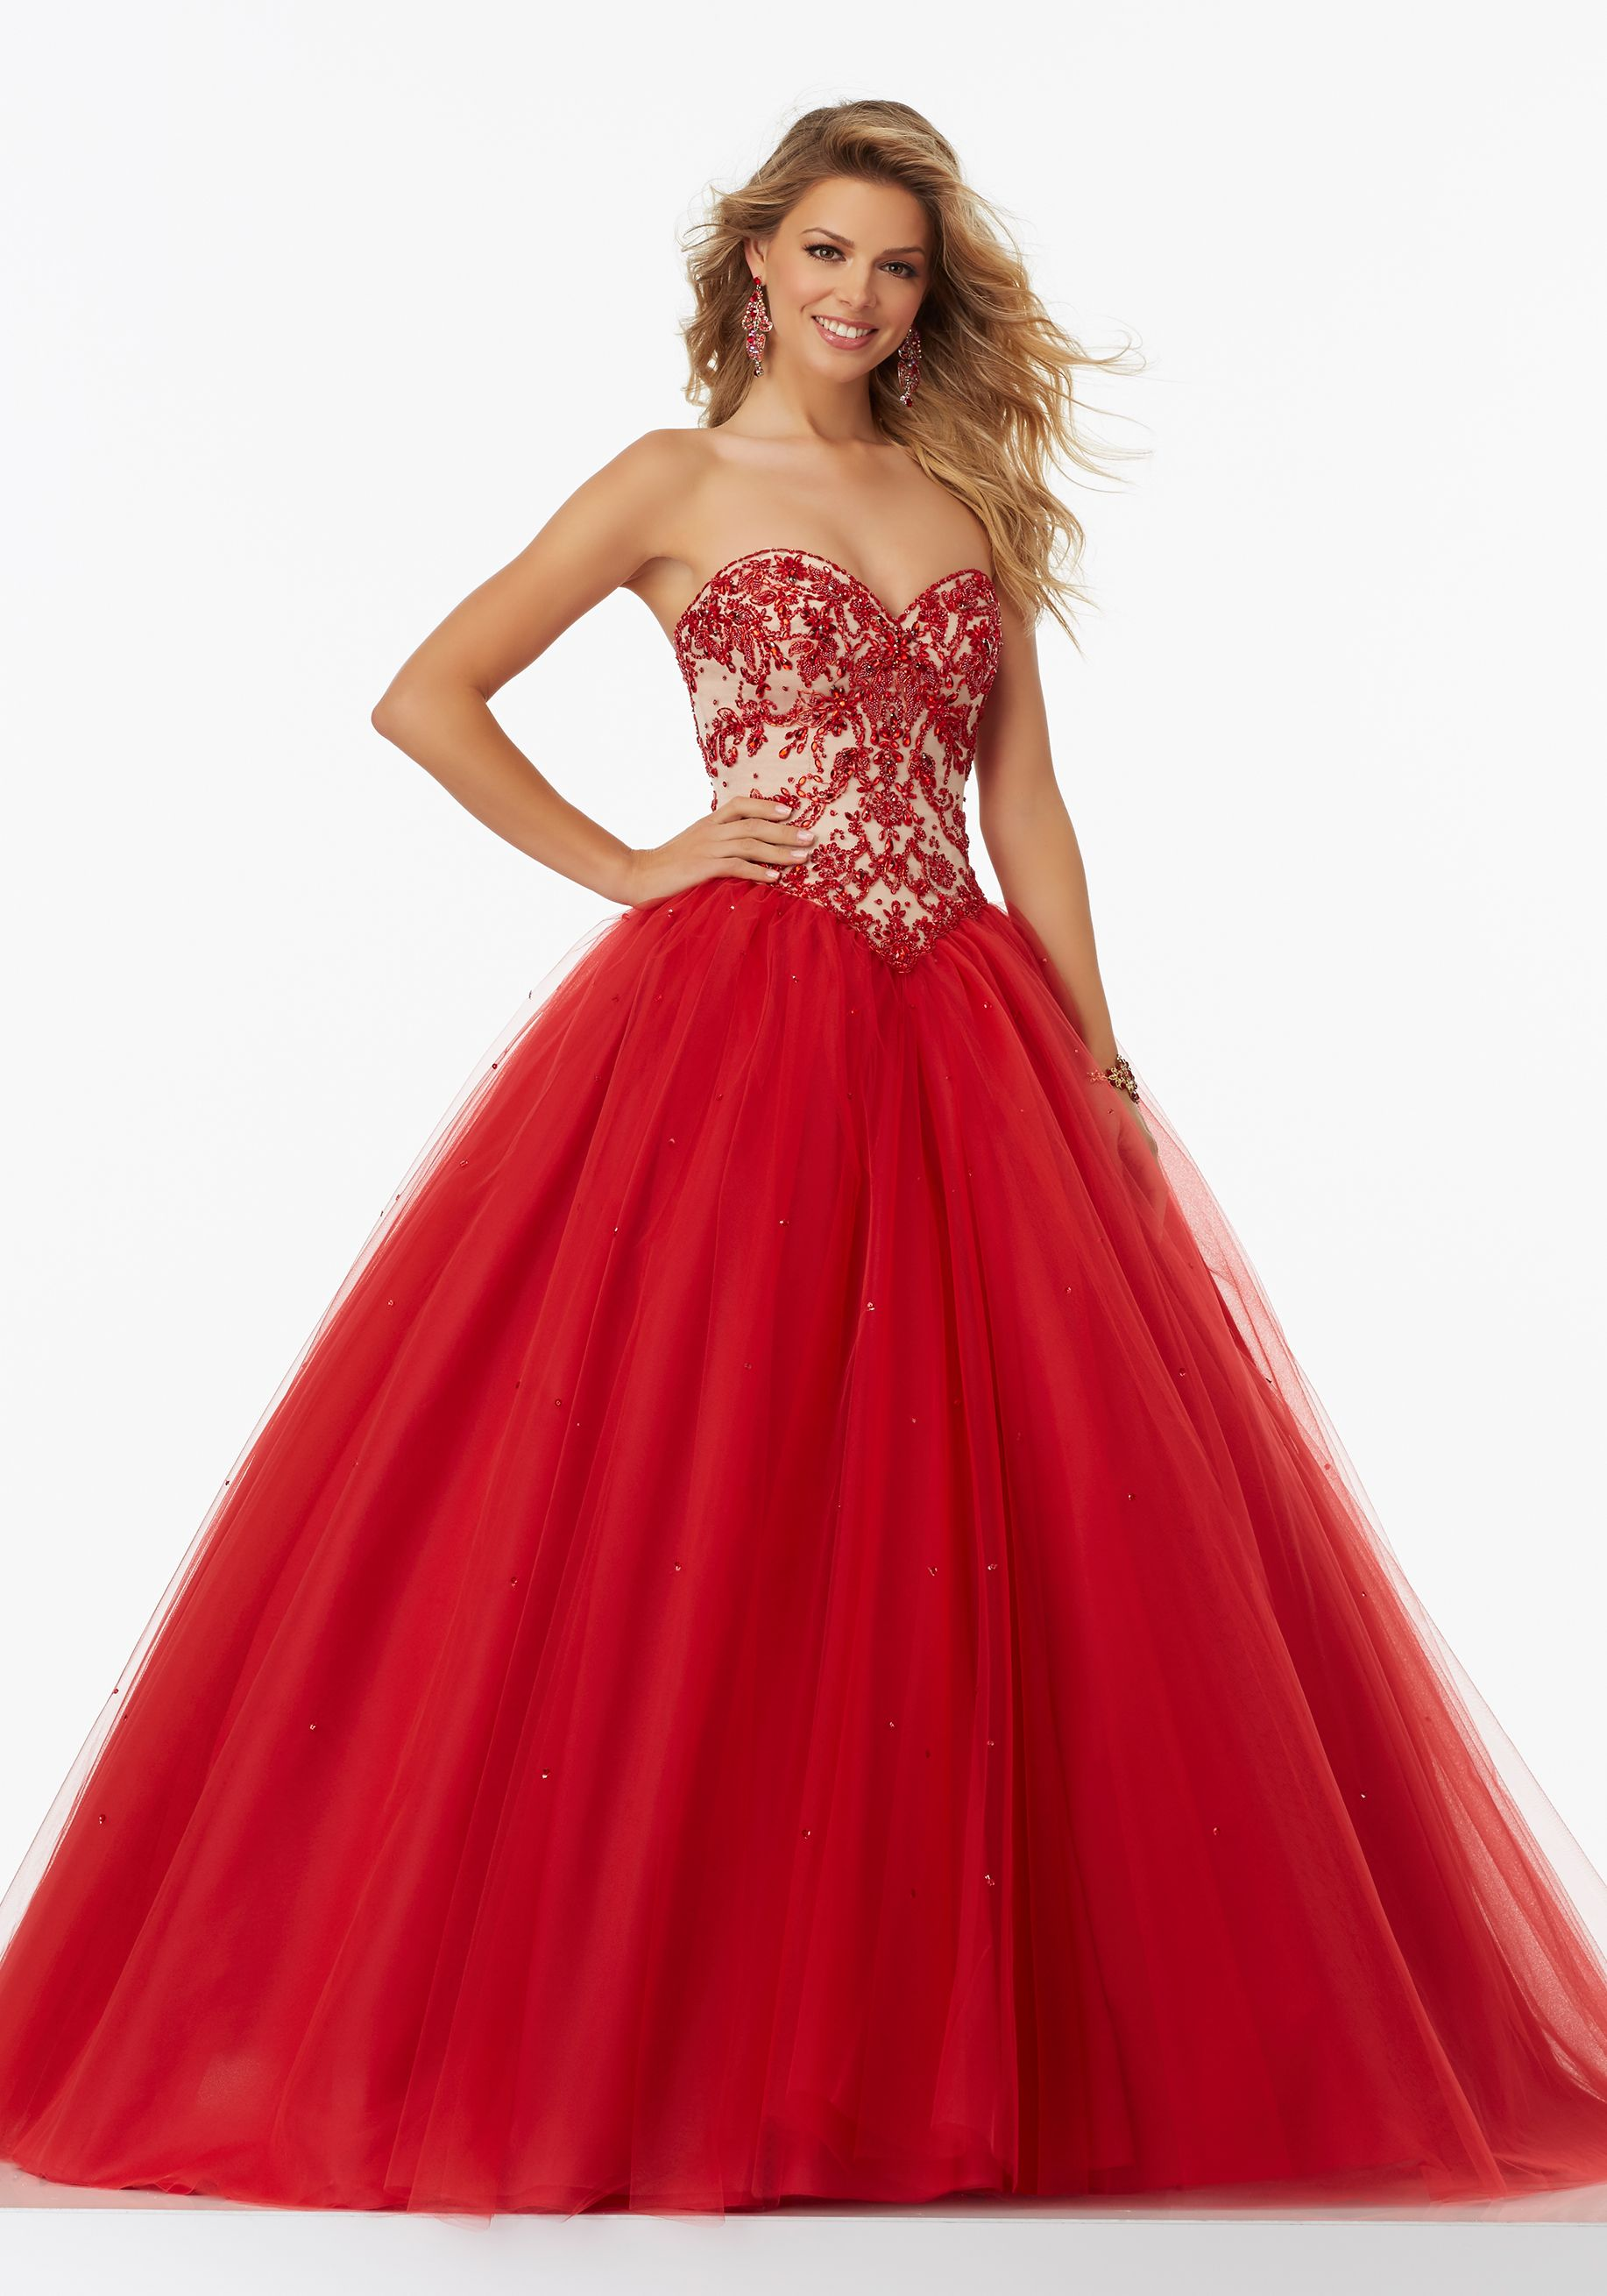 Basque Waist Ball Gown Strapless Sweetheart Neckline Prom Gown With Beaded Ball Gowns Prom Dresses Mori Lee Prom Dresses [ 2620 x 1834 Pixel ]